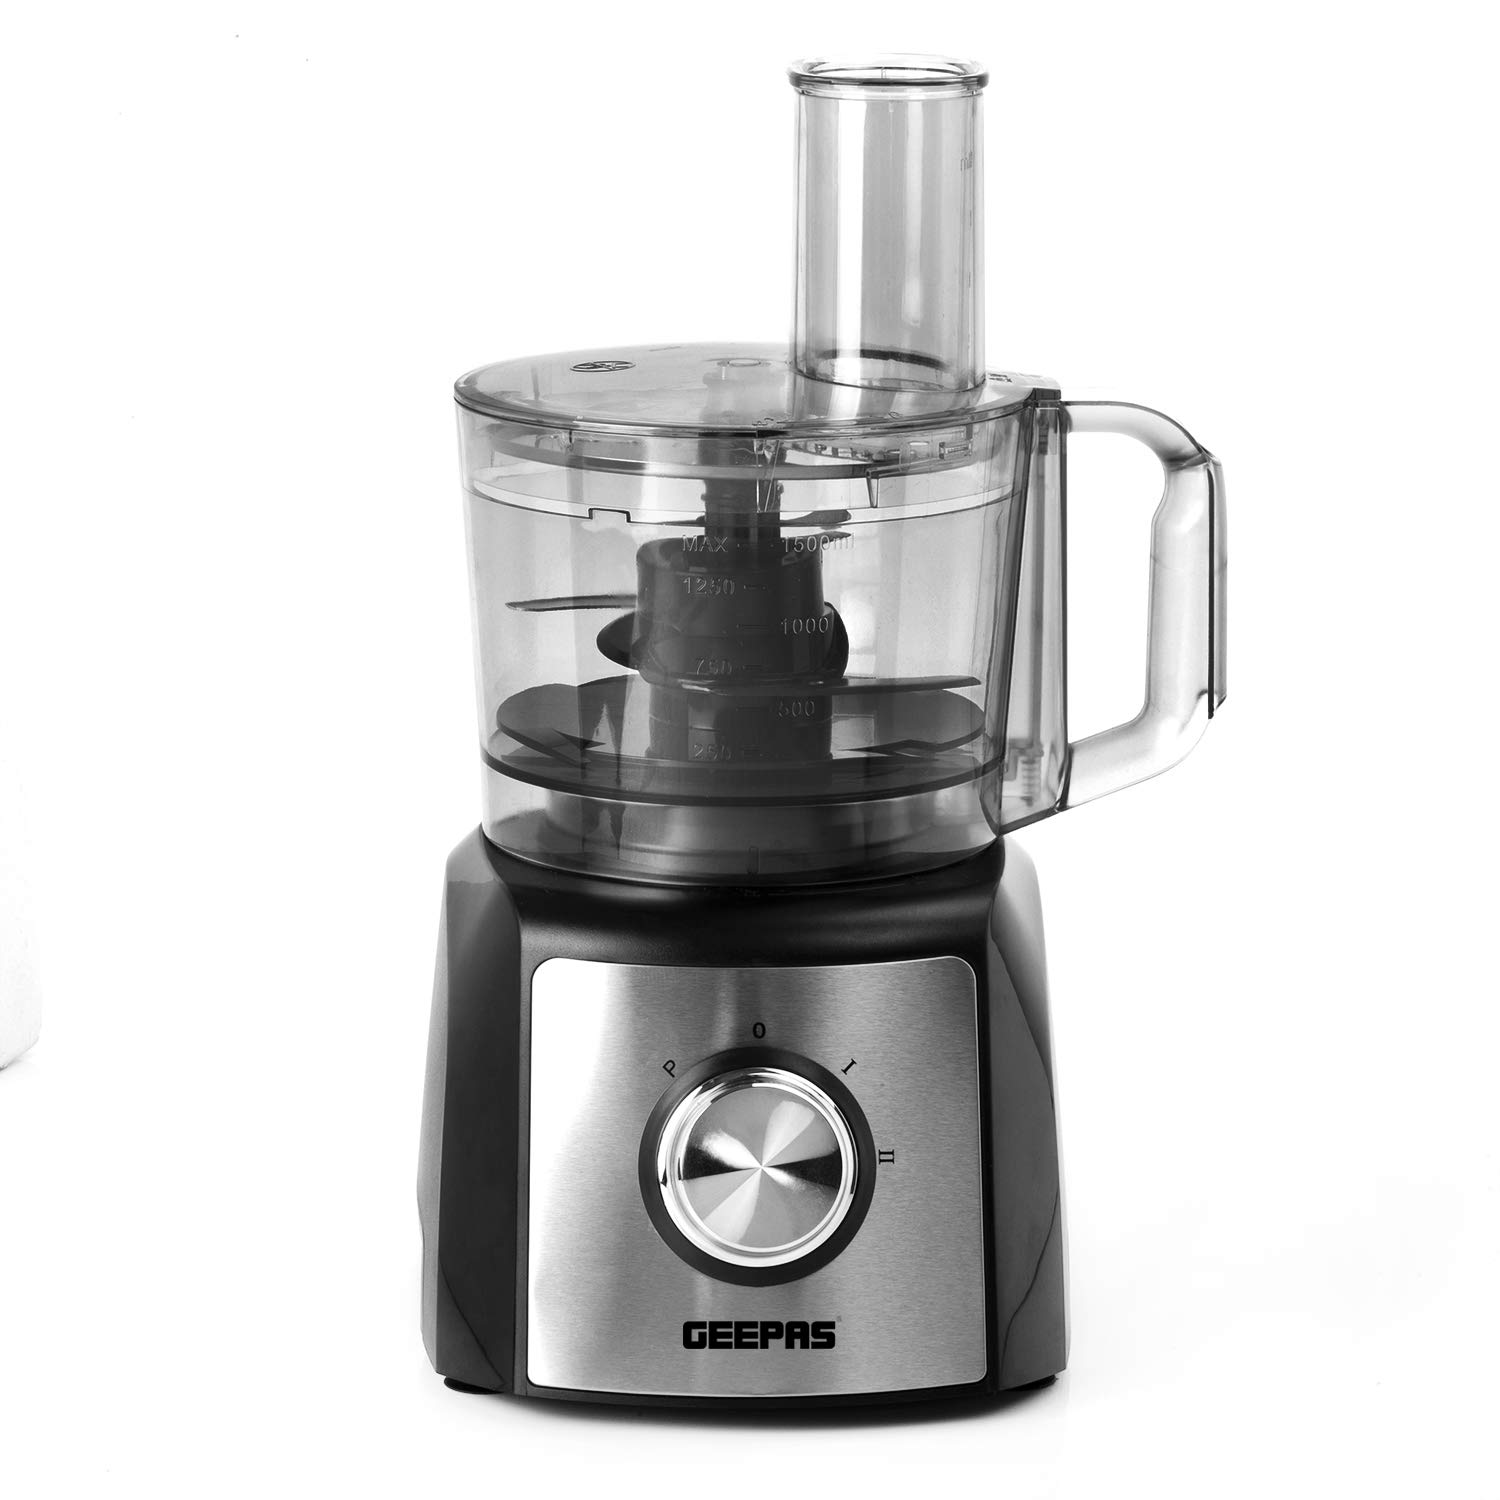 Geepas 1200W Compact Food Processor and Blender, Low Noise, Stainless Steel Blade with 1.2L Bowl Capacity & Two Speed and One Pulse Control